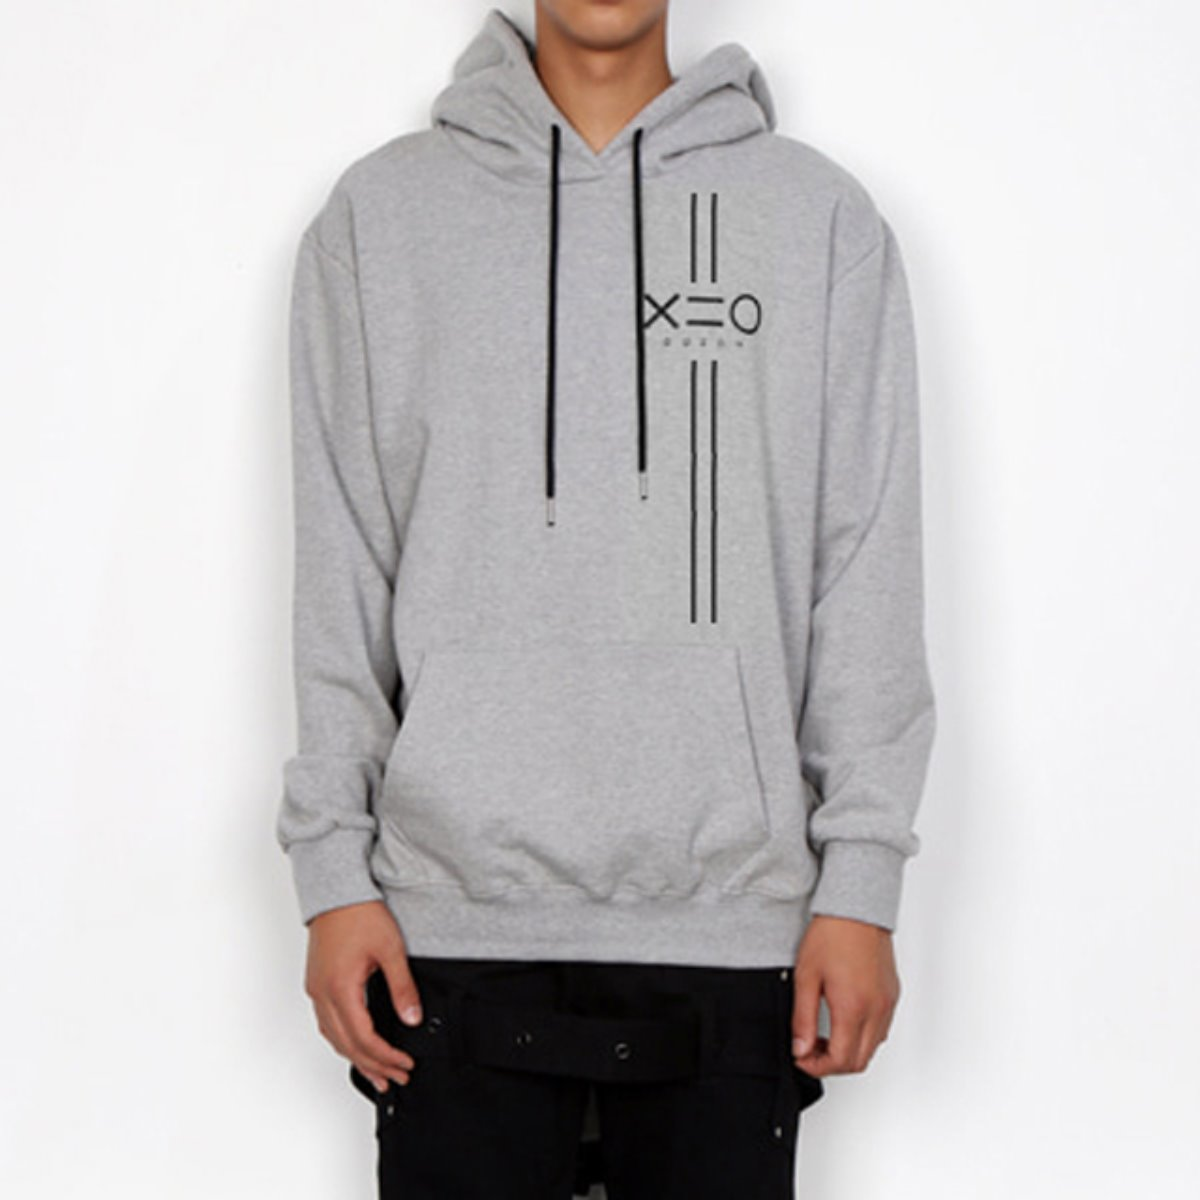 BLACK EQUAL V LINE & LOGO HOODIE SWEATSHIRTS(GREY)